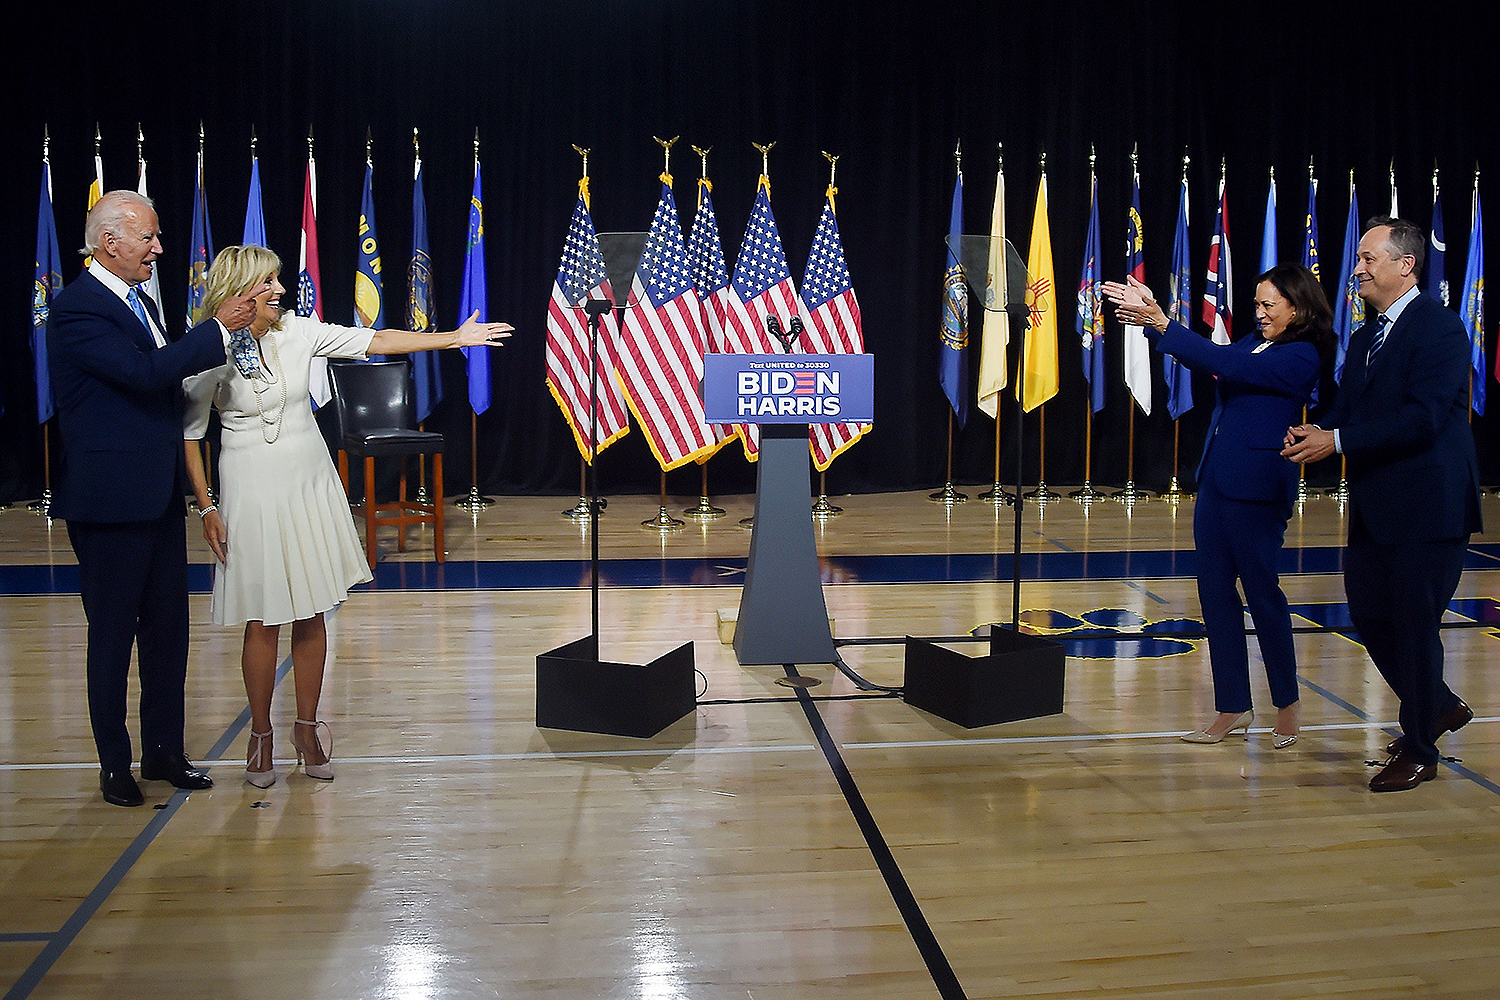 Democratic presidential nominee Joe Biden (left) and his wife, Jill Biden, wave to vice presidential running mate Kamala Harris and her husband, Douglas Emhoff, after their first press conference together in Wilmington, Delaware, on Aug. 12. OLIVIER DOULIERY/AFP via Getty Images